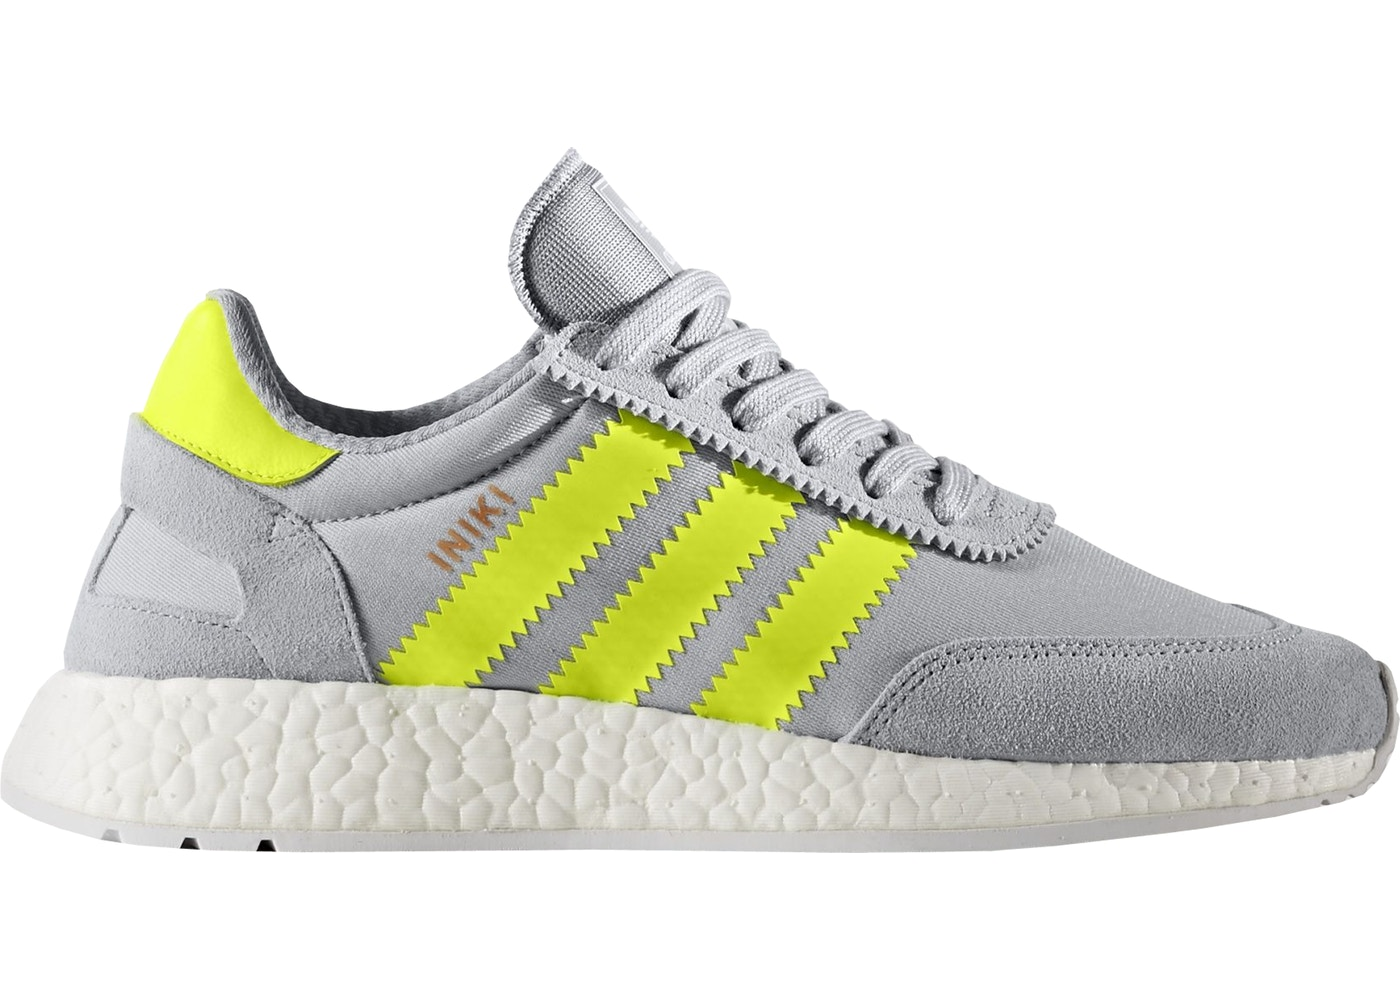 a0711ba0a1d Buy adidas Iniki Shoes   Deadstock Sneakers